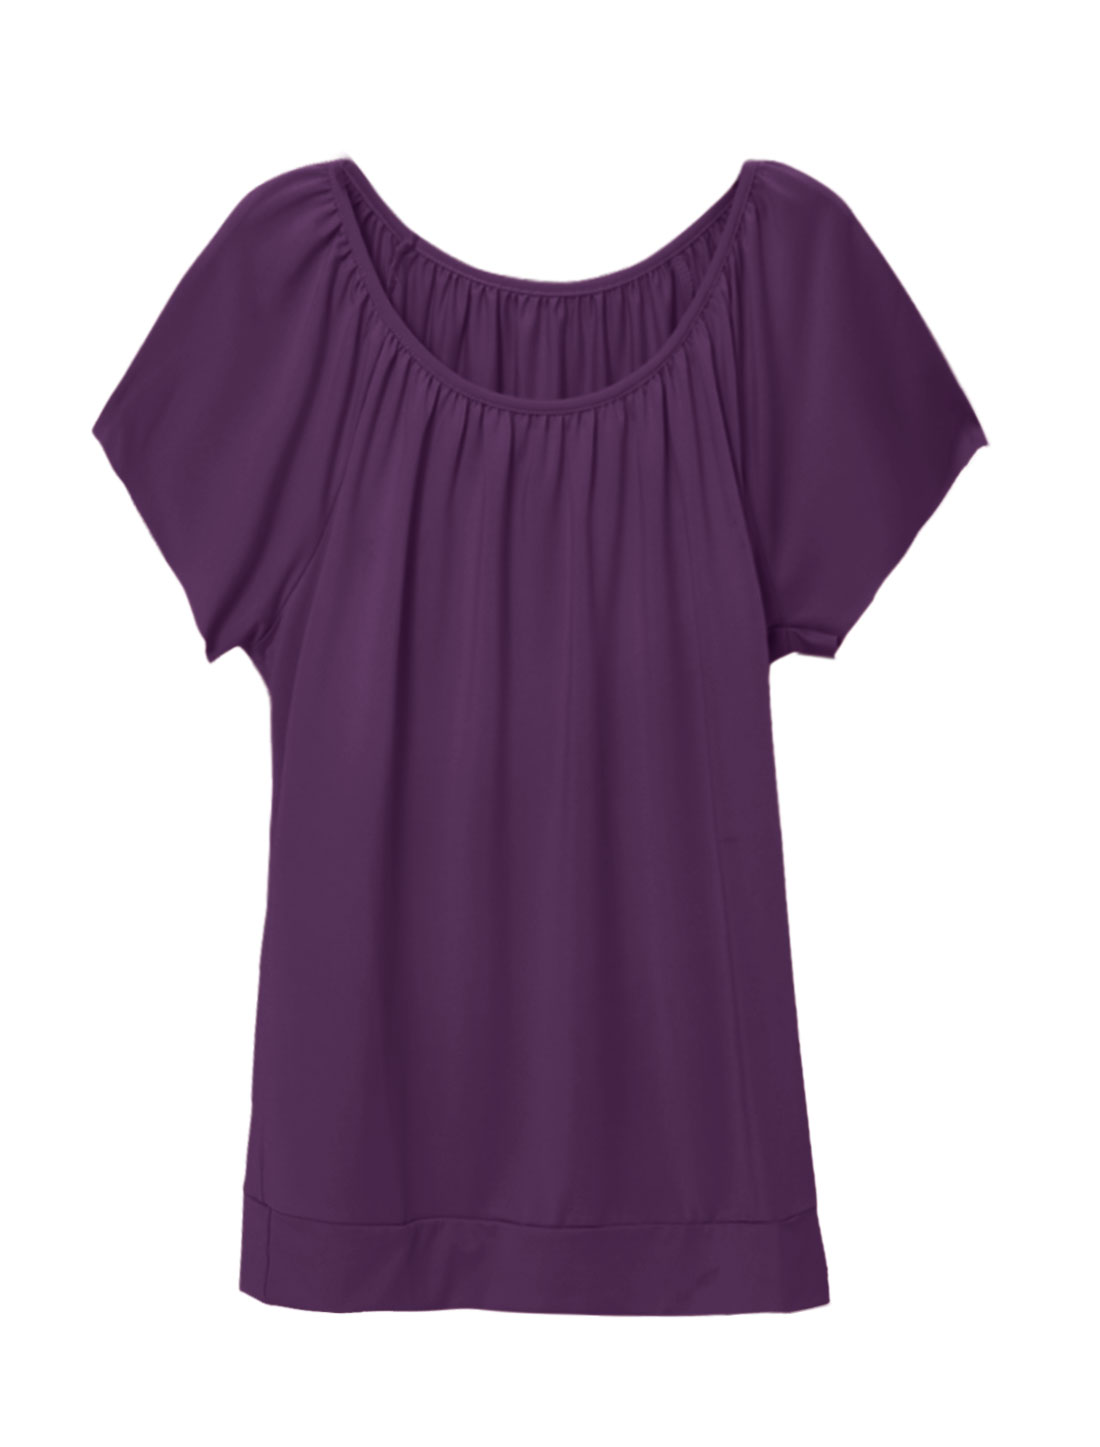 Women Round Neckline Raw Edge Raglan Sleeves Top Purple S